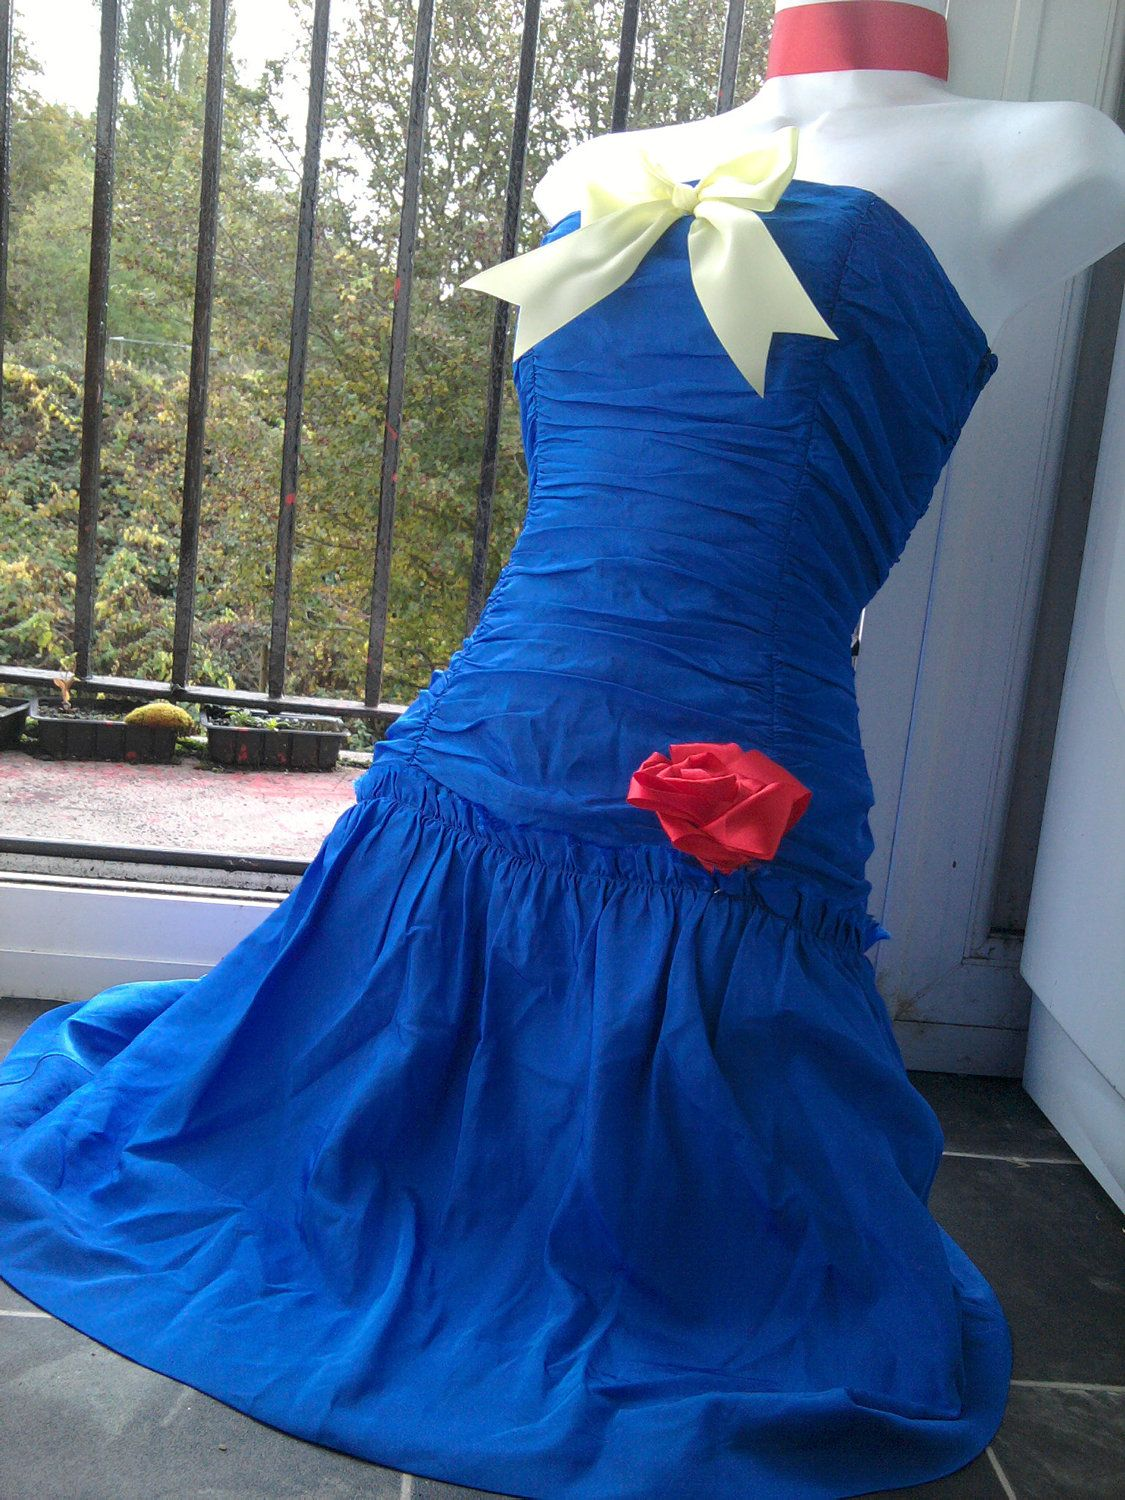 Snow white dress prom dress up costume s wiggle prom blue dress